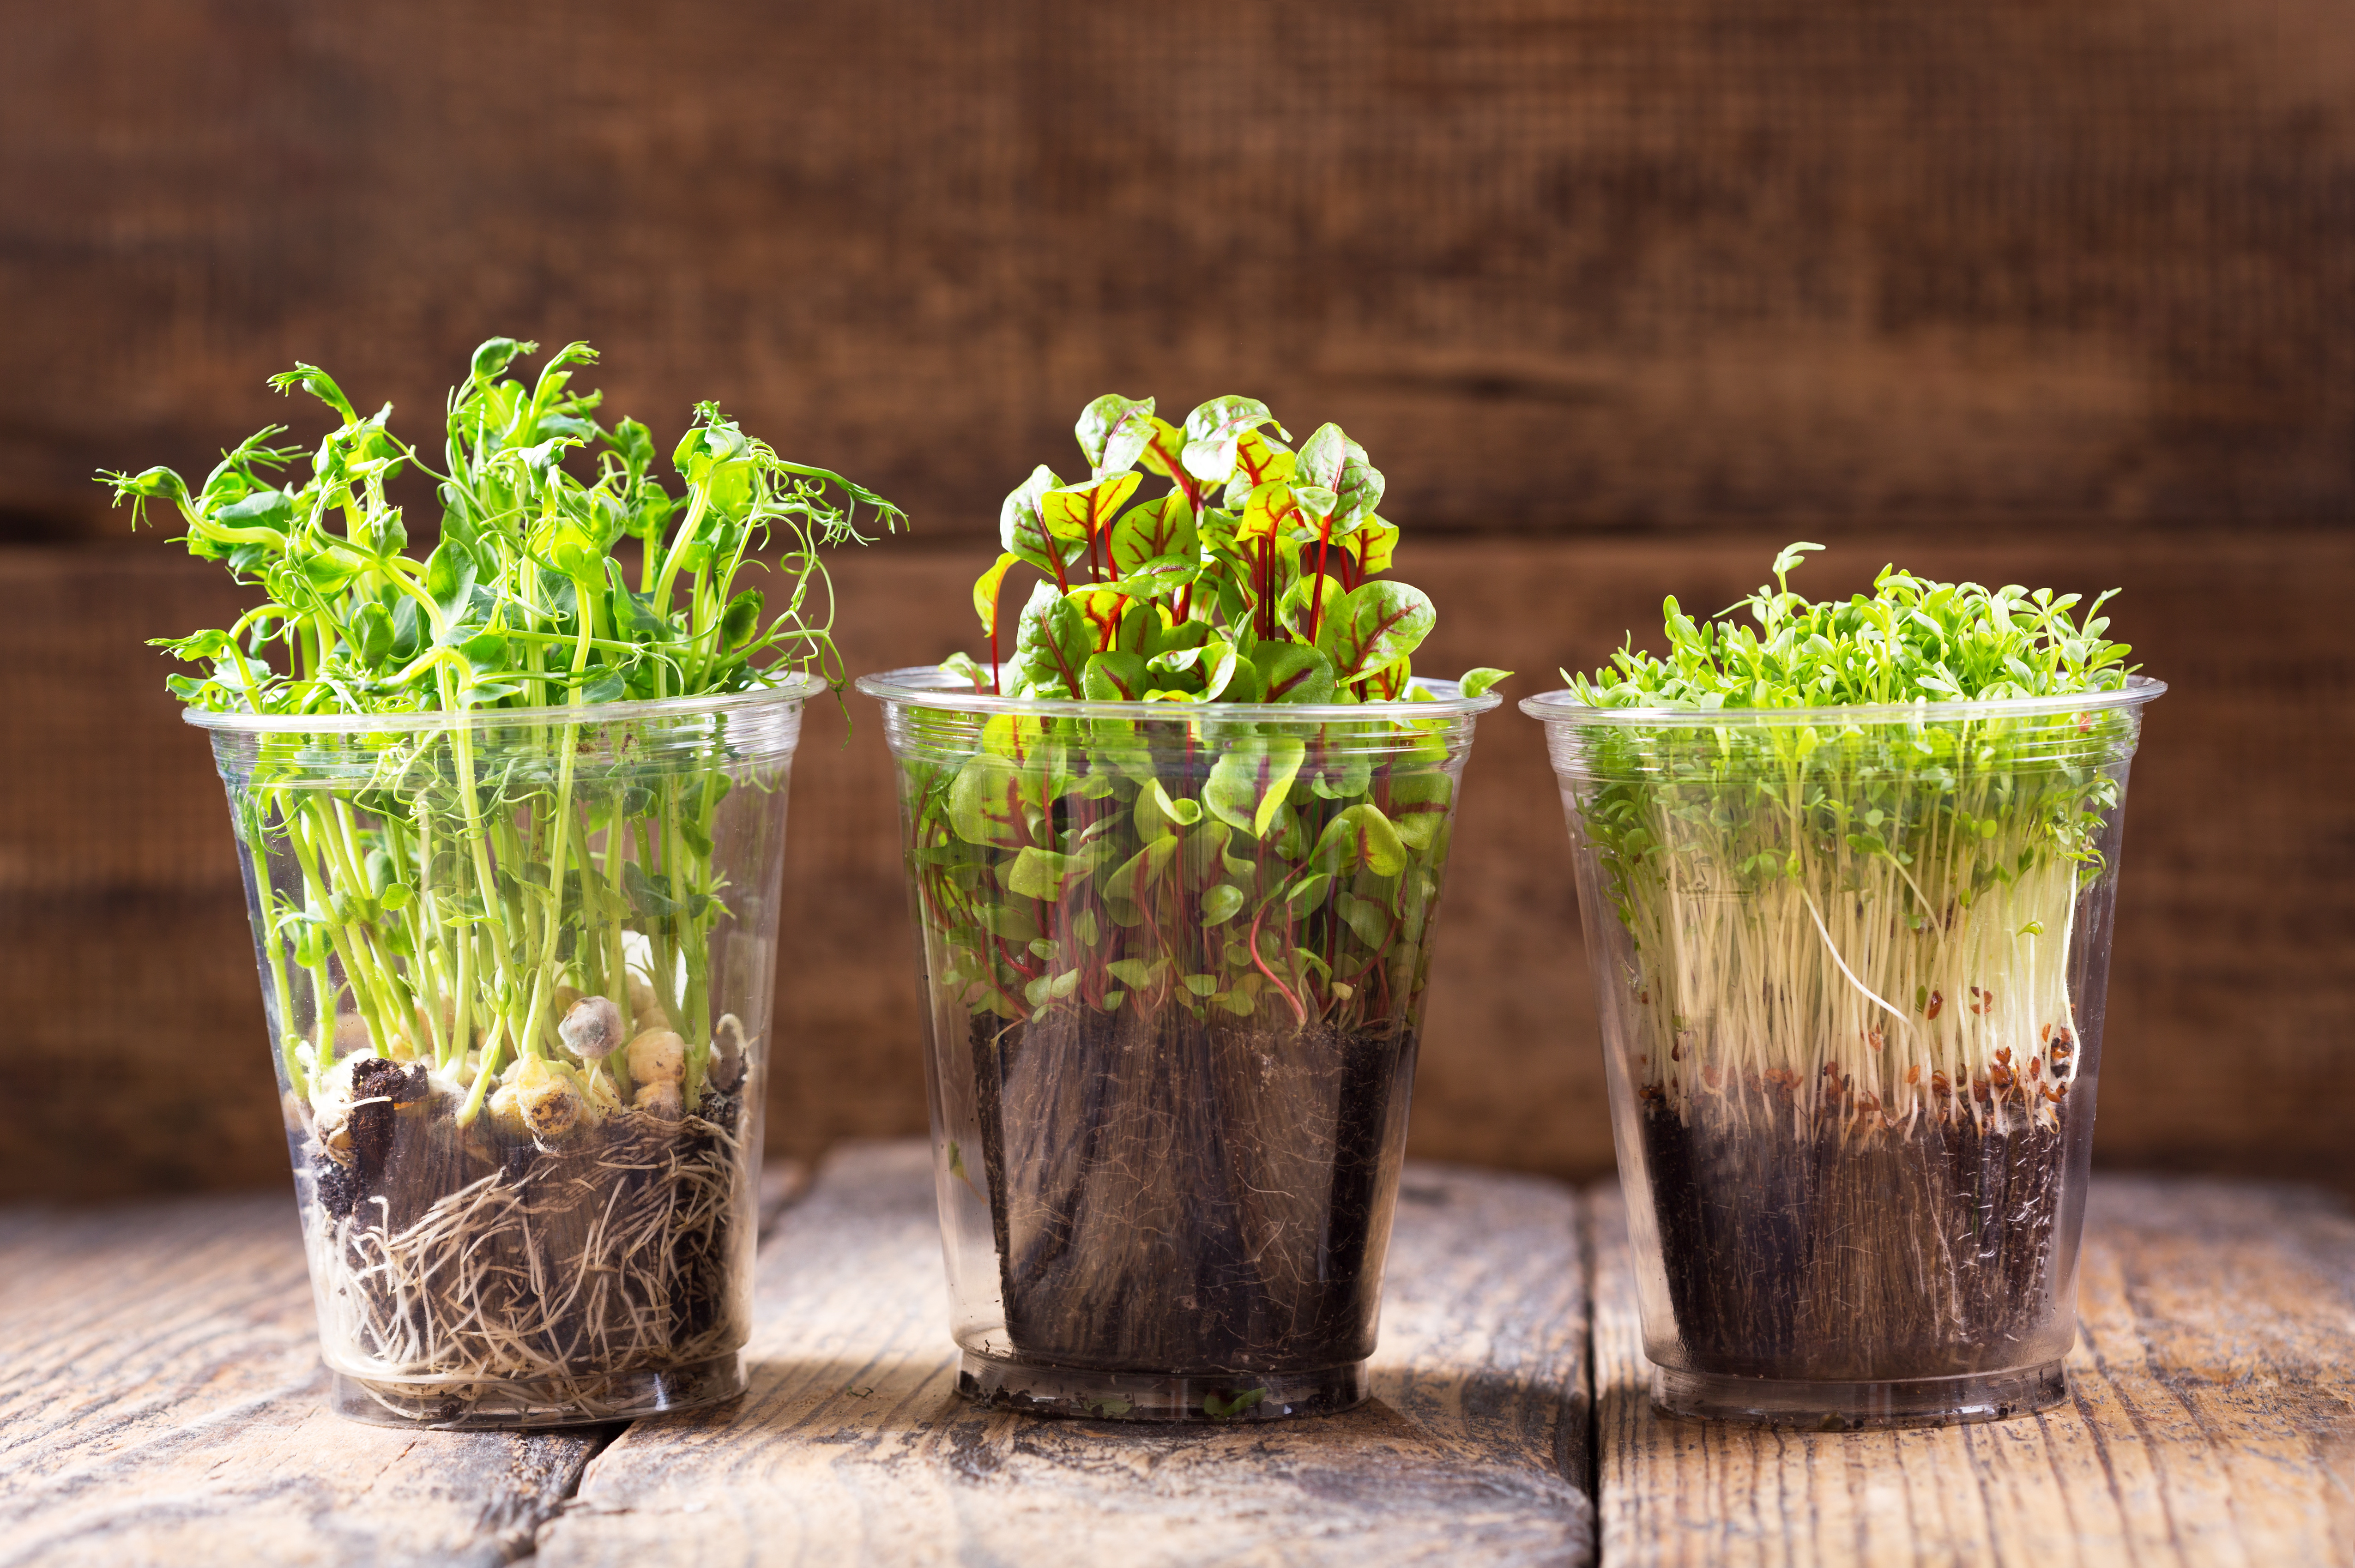 growing cress plants in a pots